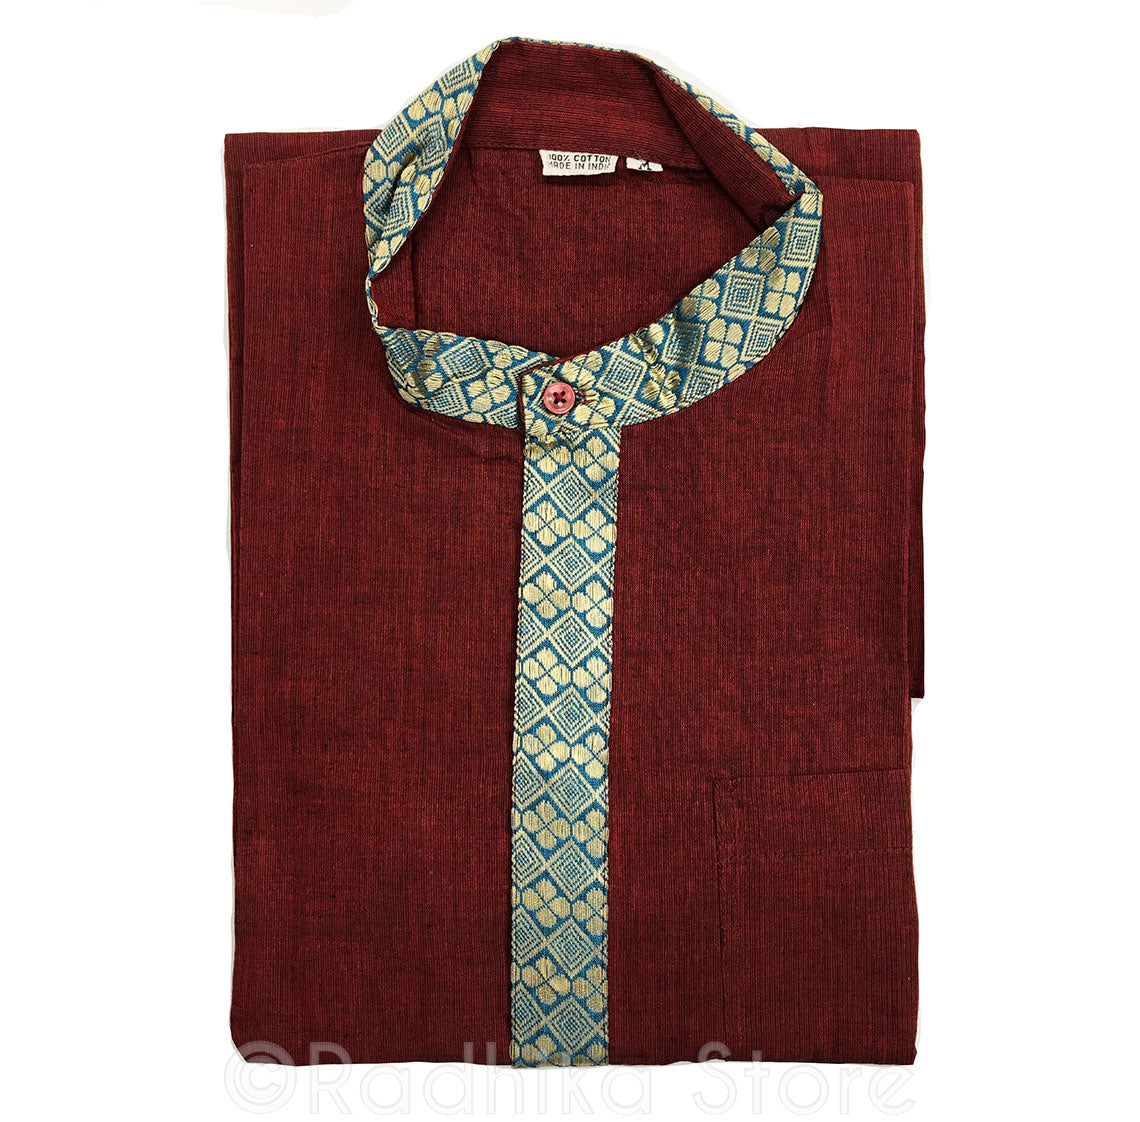 Maroon Kurtas - With Beige/Gold and Teal Blue Trim - S,m,l,xl,